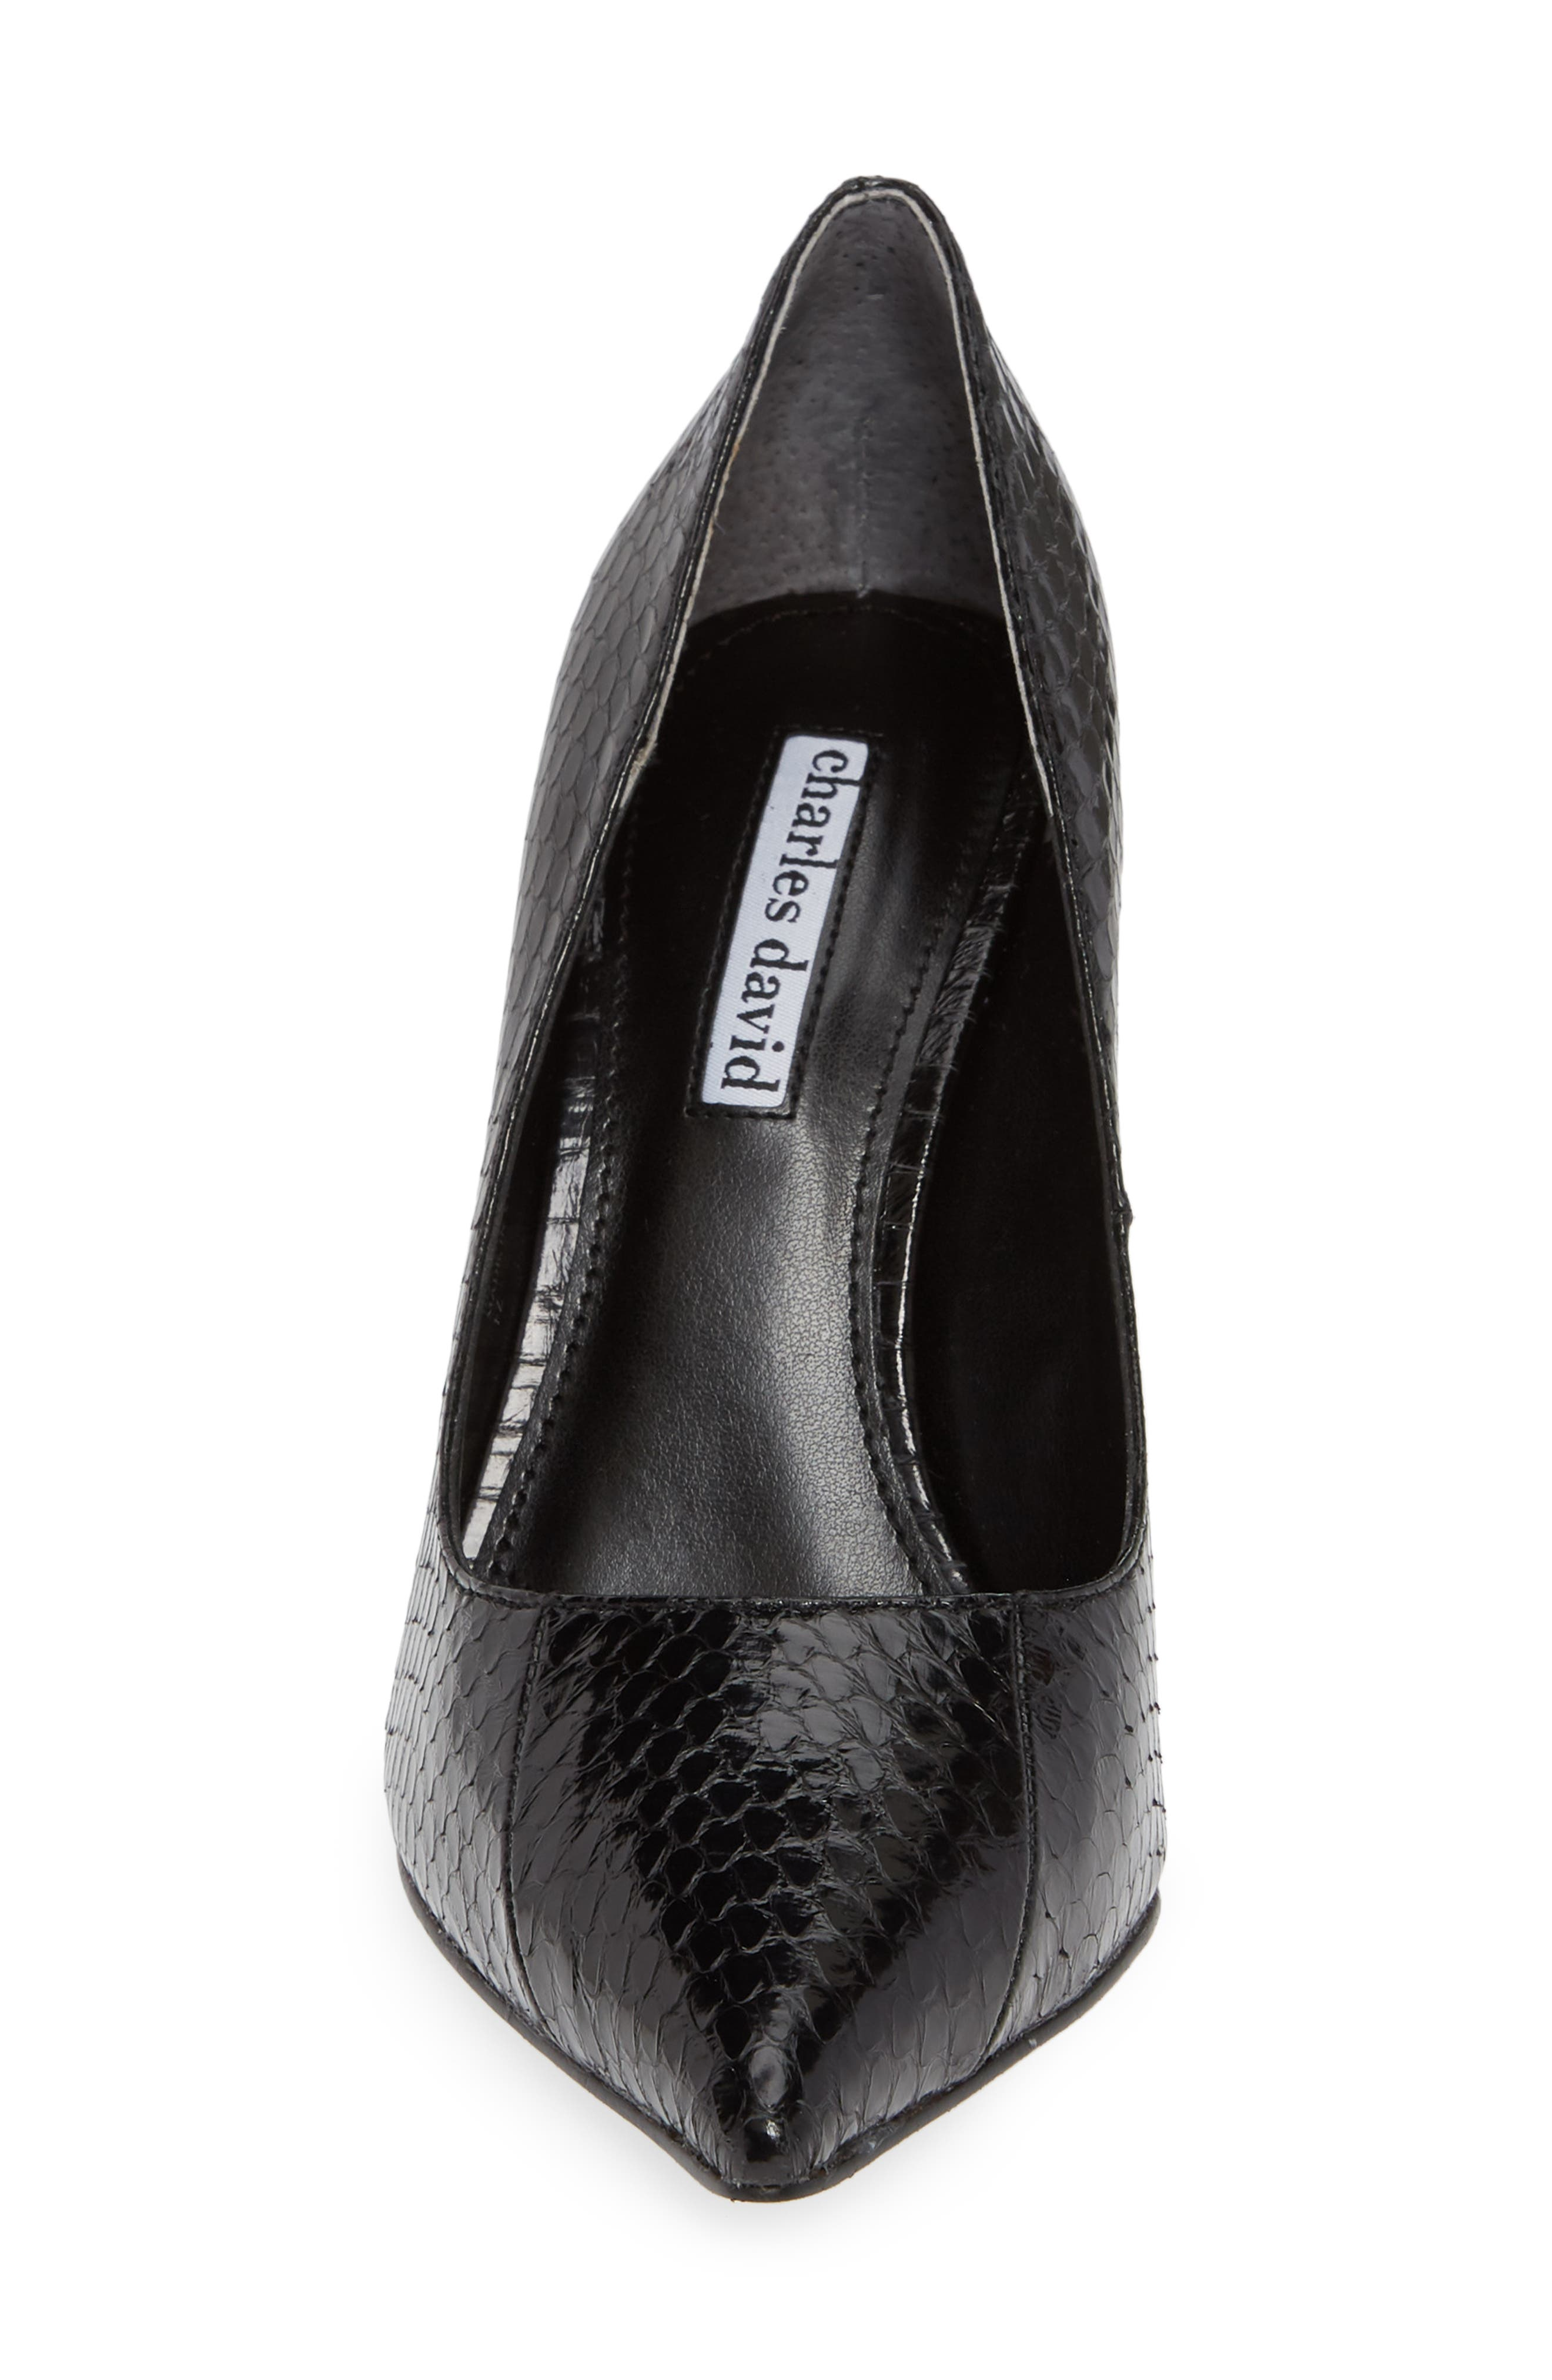 Calessi Pointy Toe Pump,                             Alternate thumbnail 4, color,                             BLACK SNAKE PRINT LEATHER